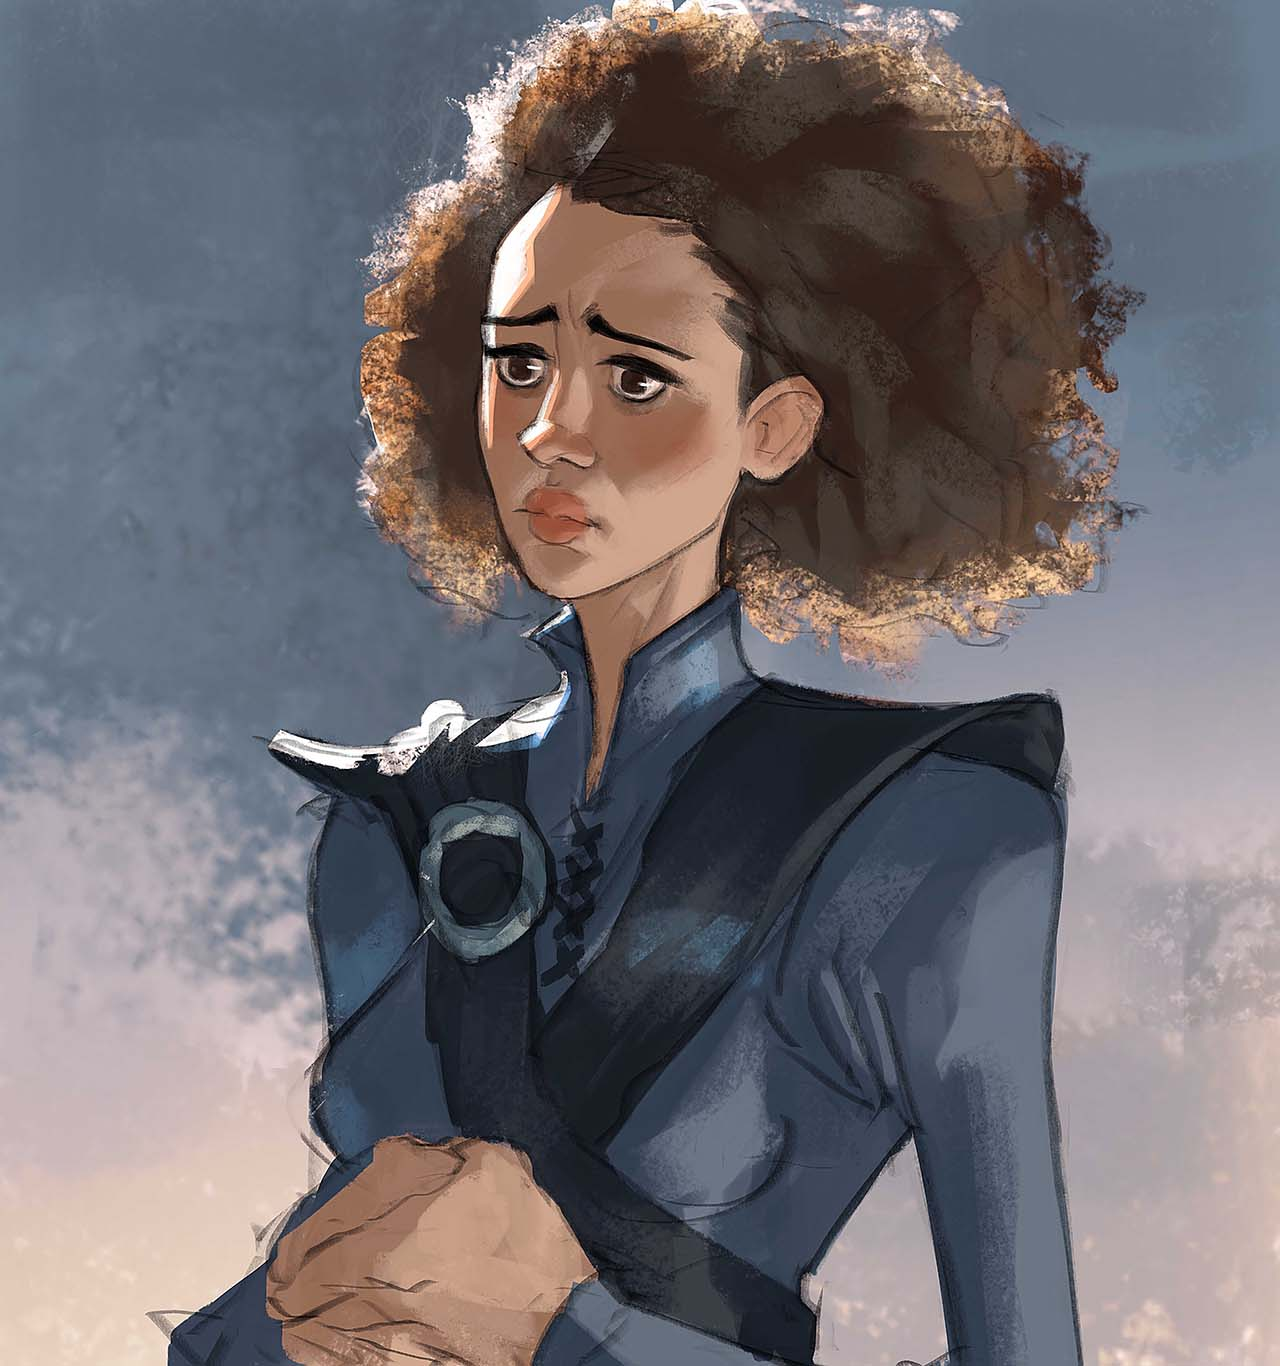 Artist Creates Unique Character Arts From Game Of Thrones – Missandei Character Art By Ramón Nuñez